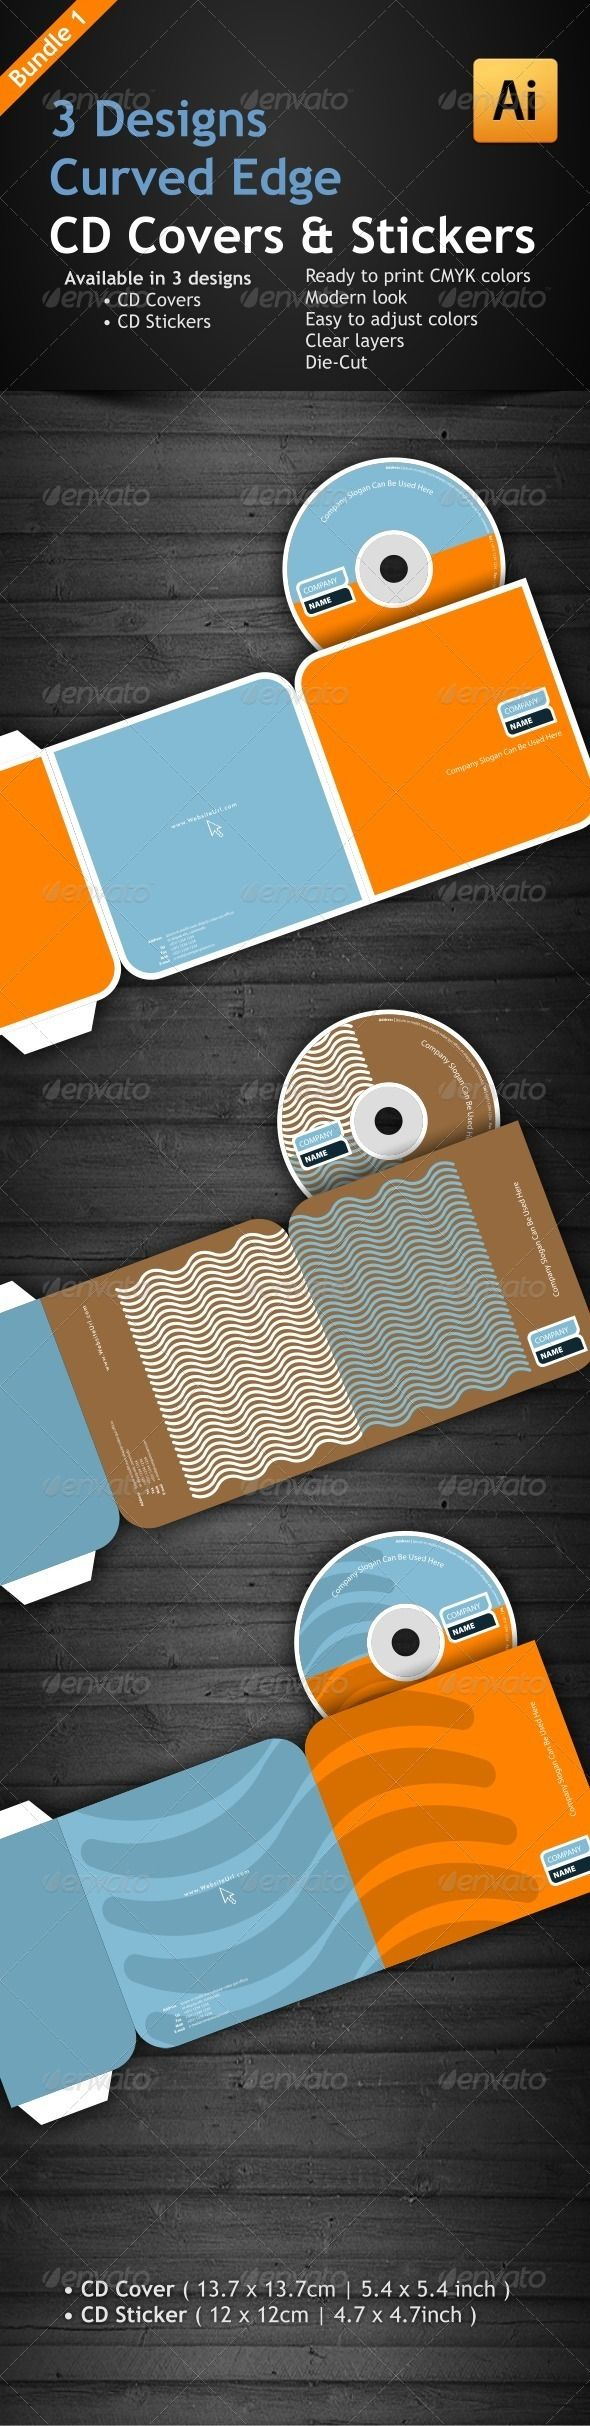 3 Curved Edge Designs for CD Covers & Stickers   Cd cover, Template ...